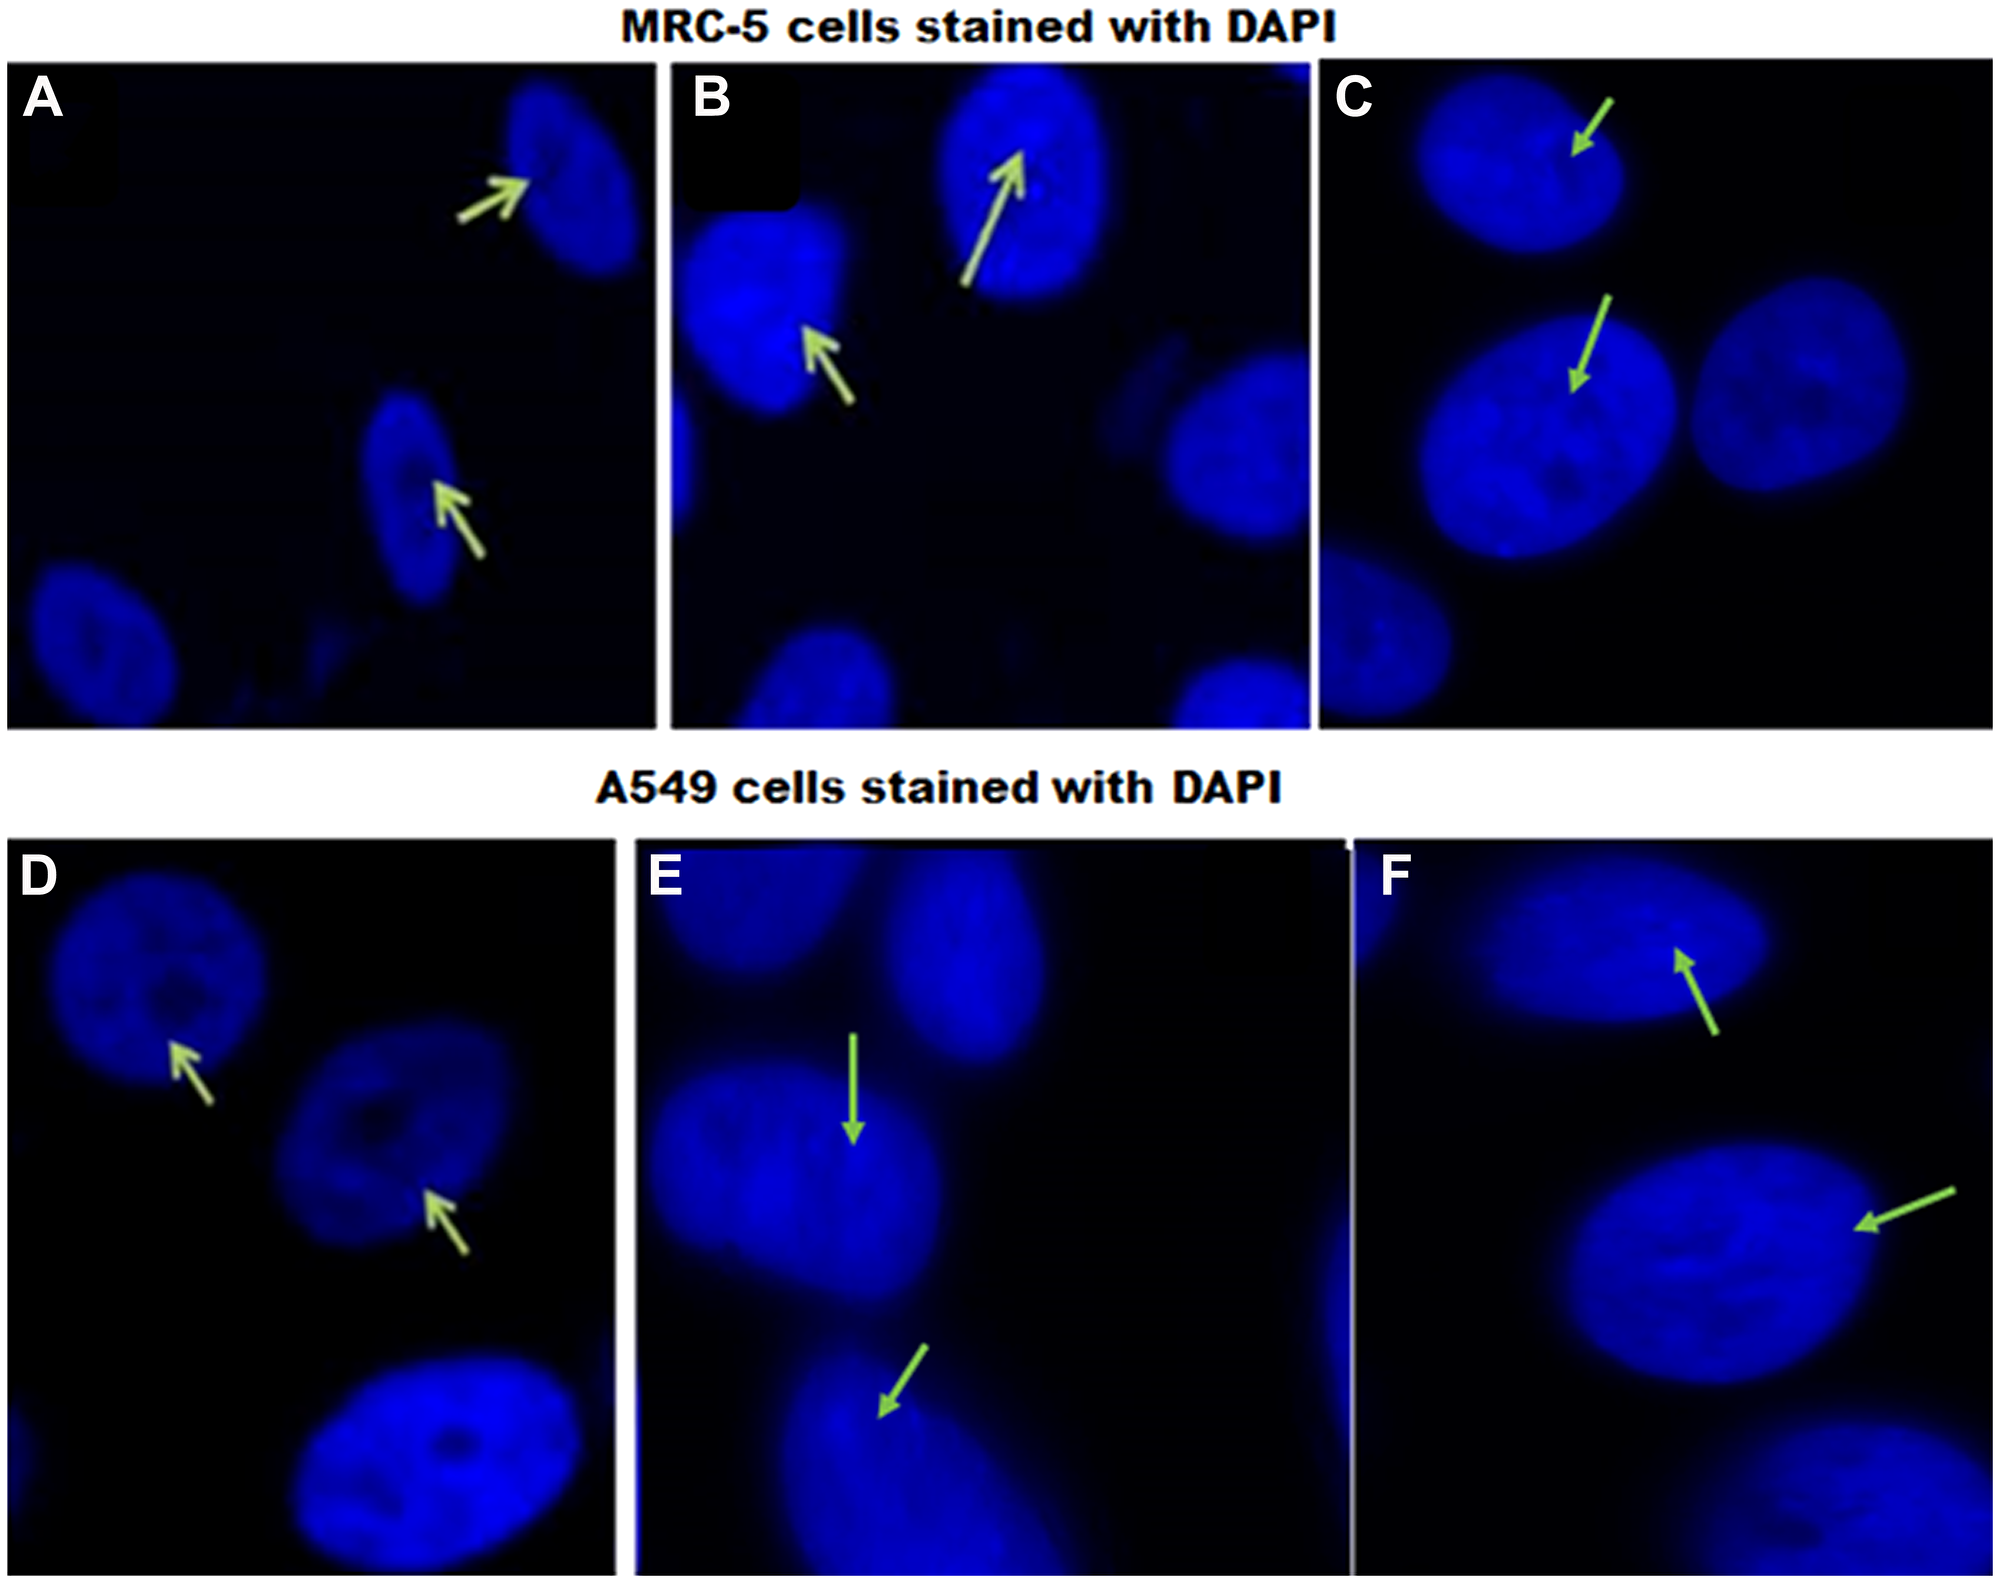 DAPI staining of MRC-5 and A549 cells in response to EFV.